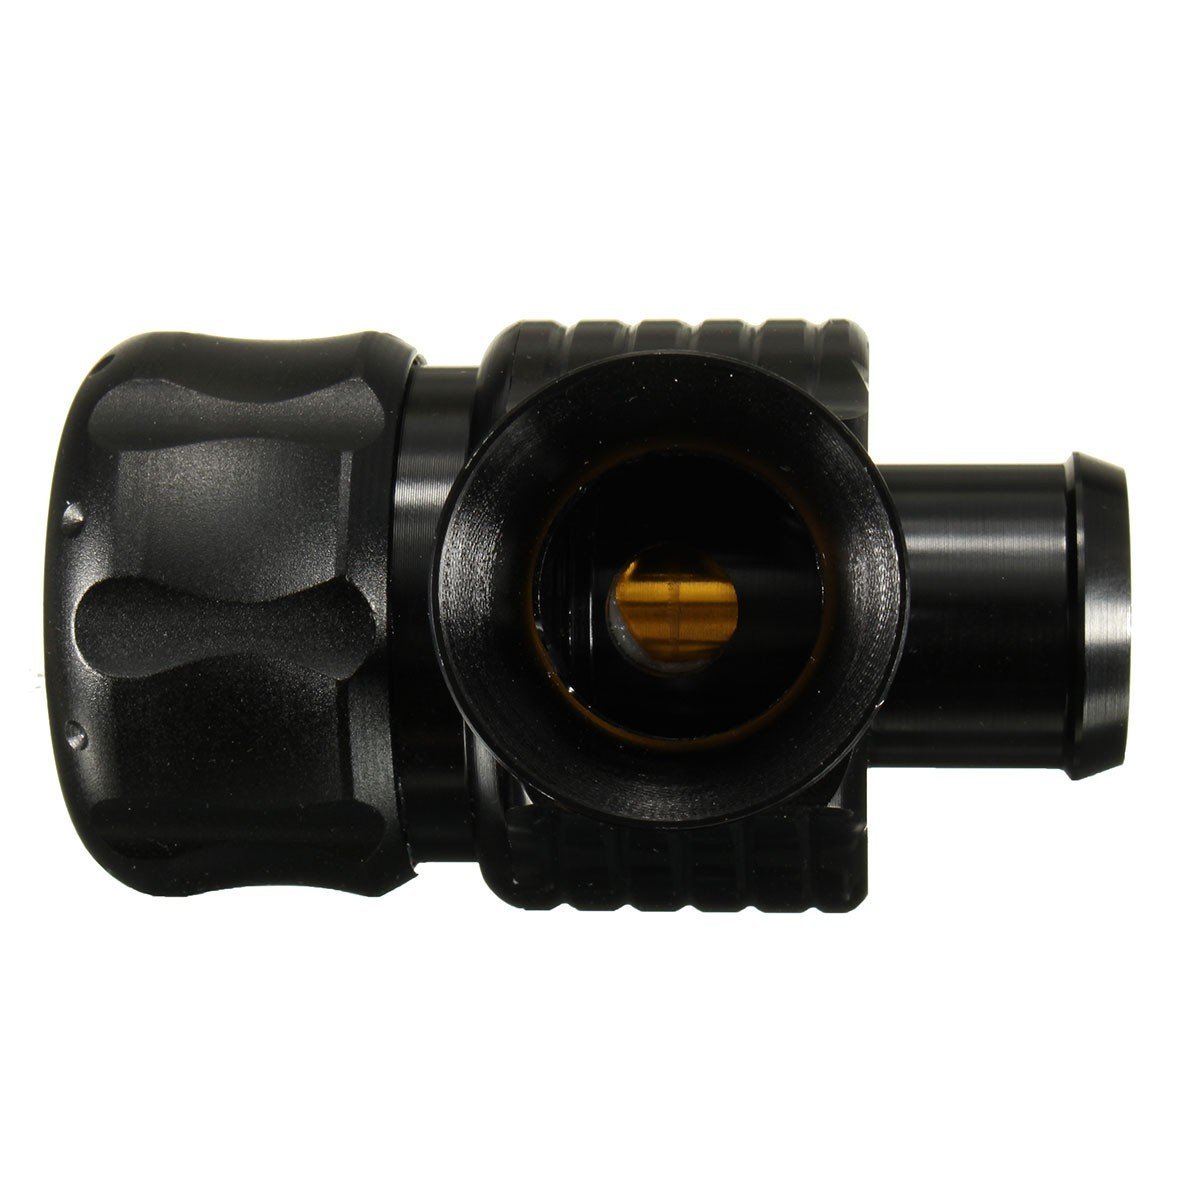 Amazon.com: Funnytoday365 25Mm Universal Blow Off Valve Dump Valve Turbo Bov Black For Audi A3 S3 A4 Tt: Car Electronics